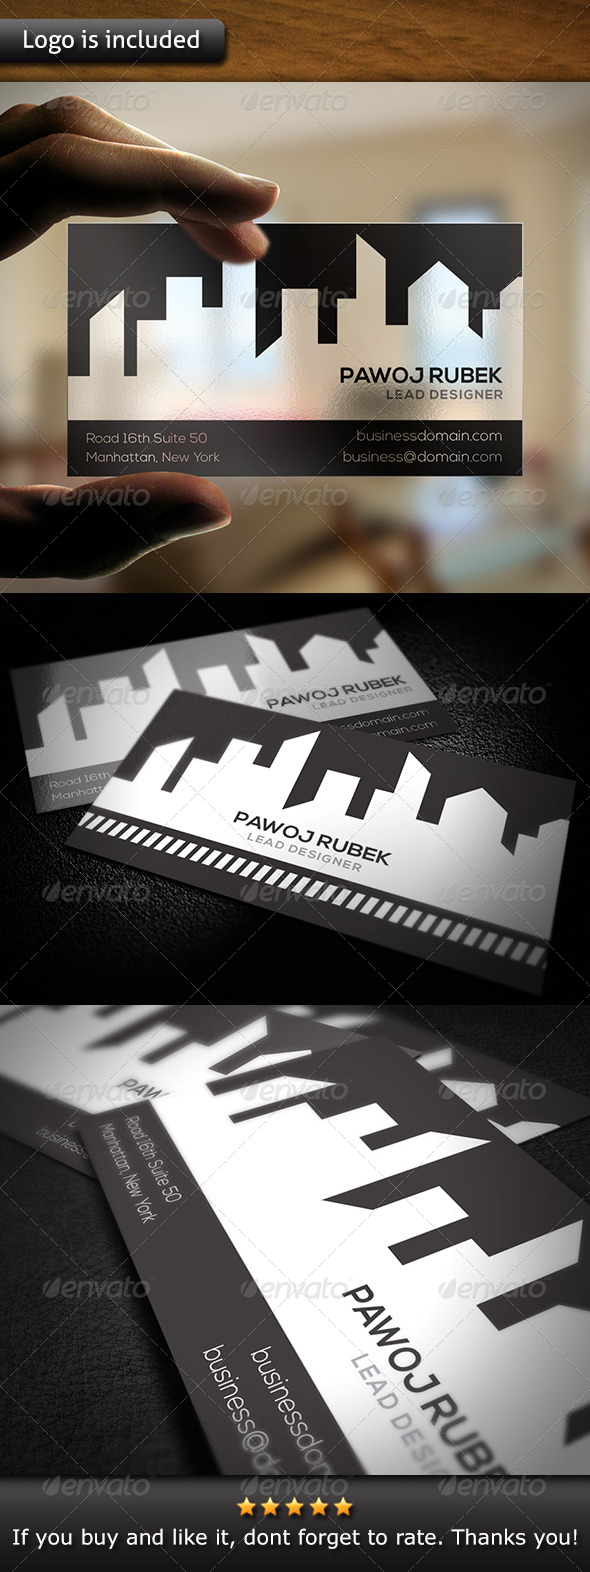 City Business Card by BossTwinsArt | GraphicRiver